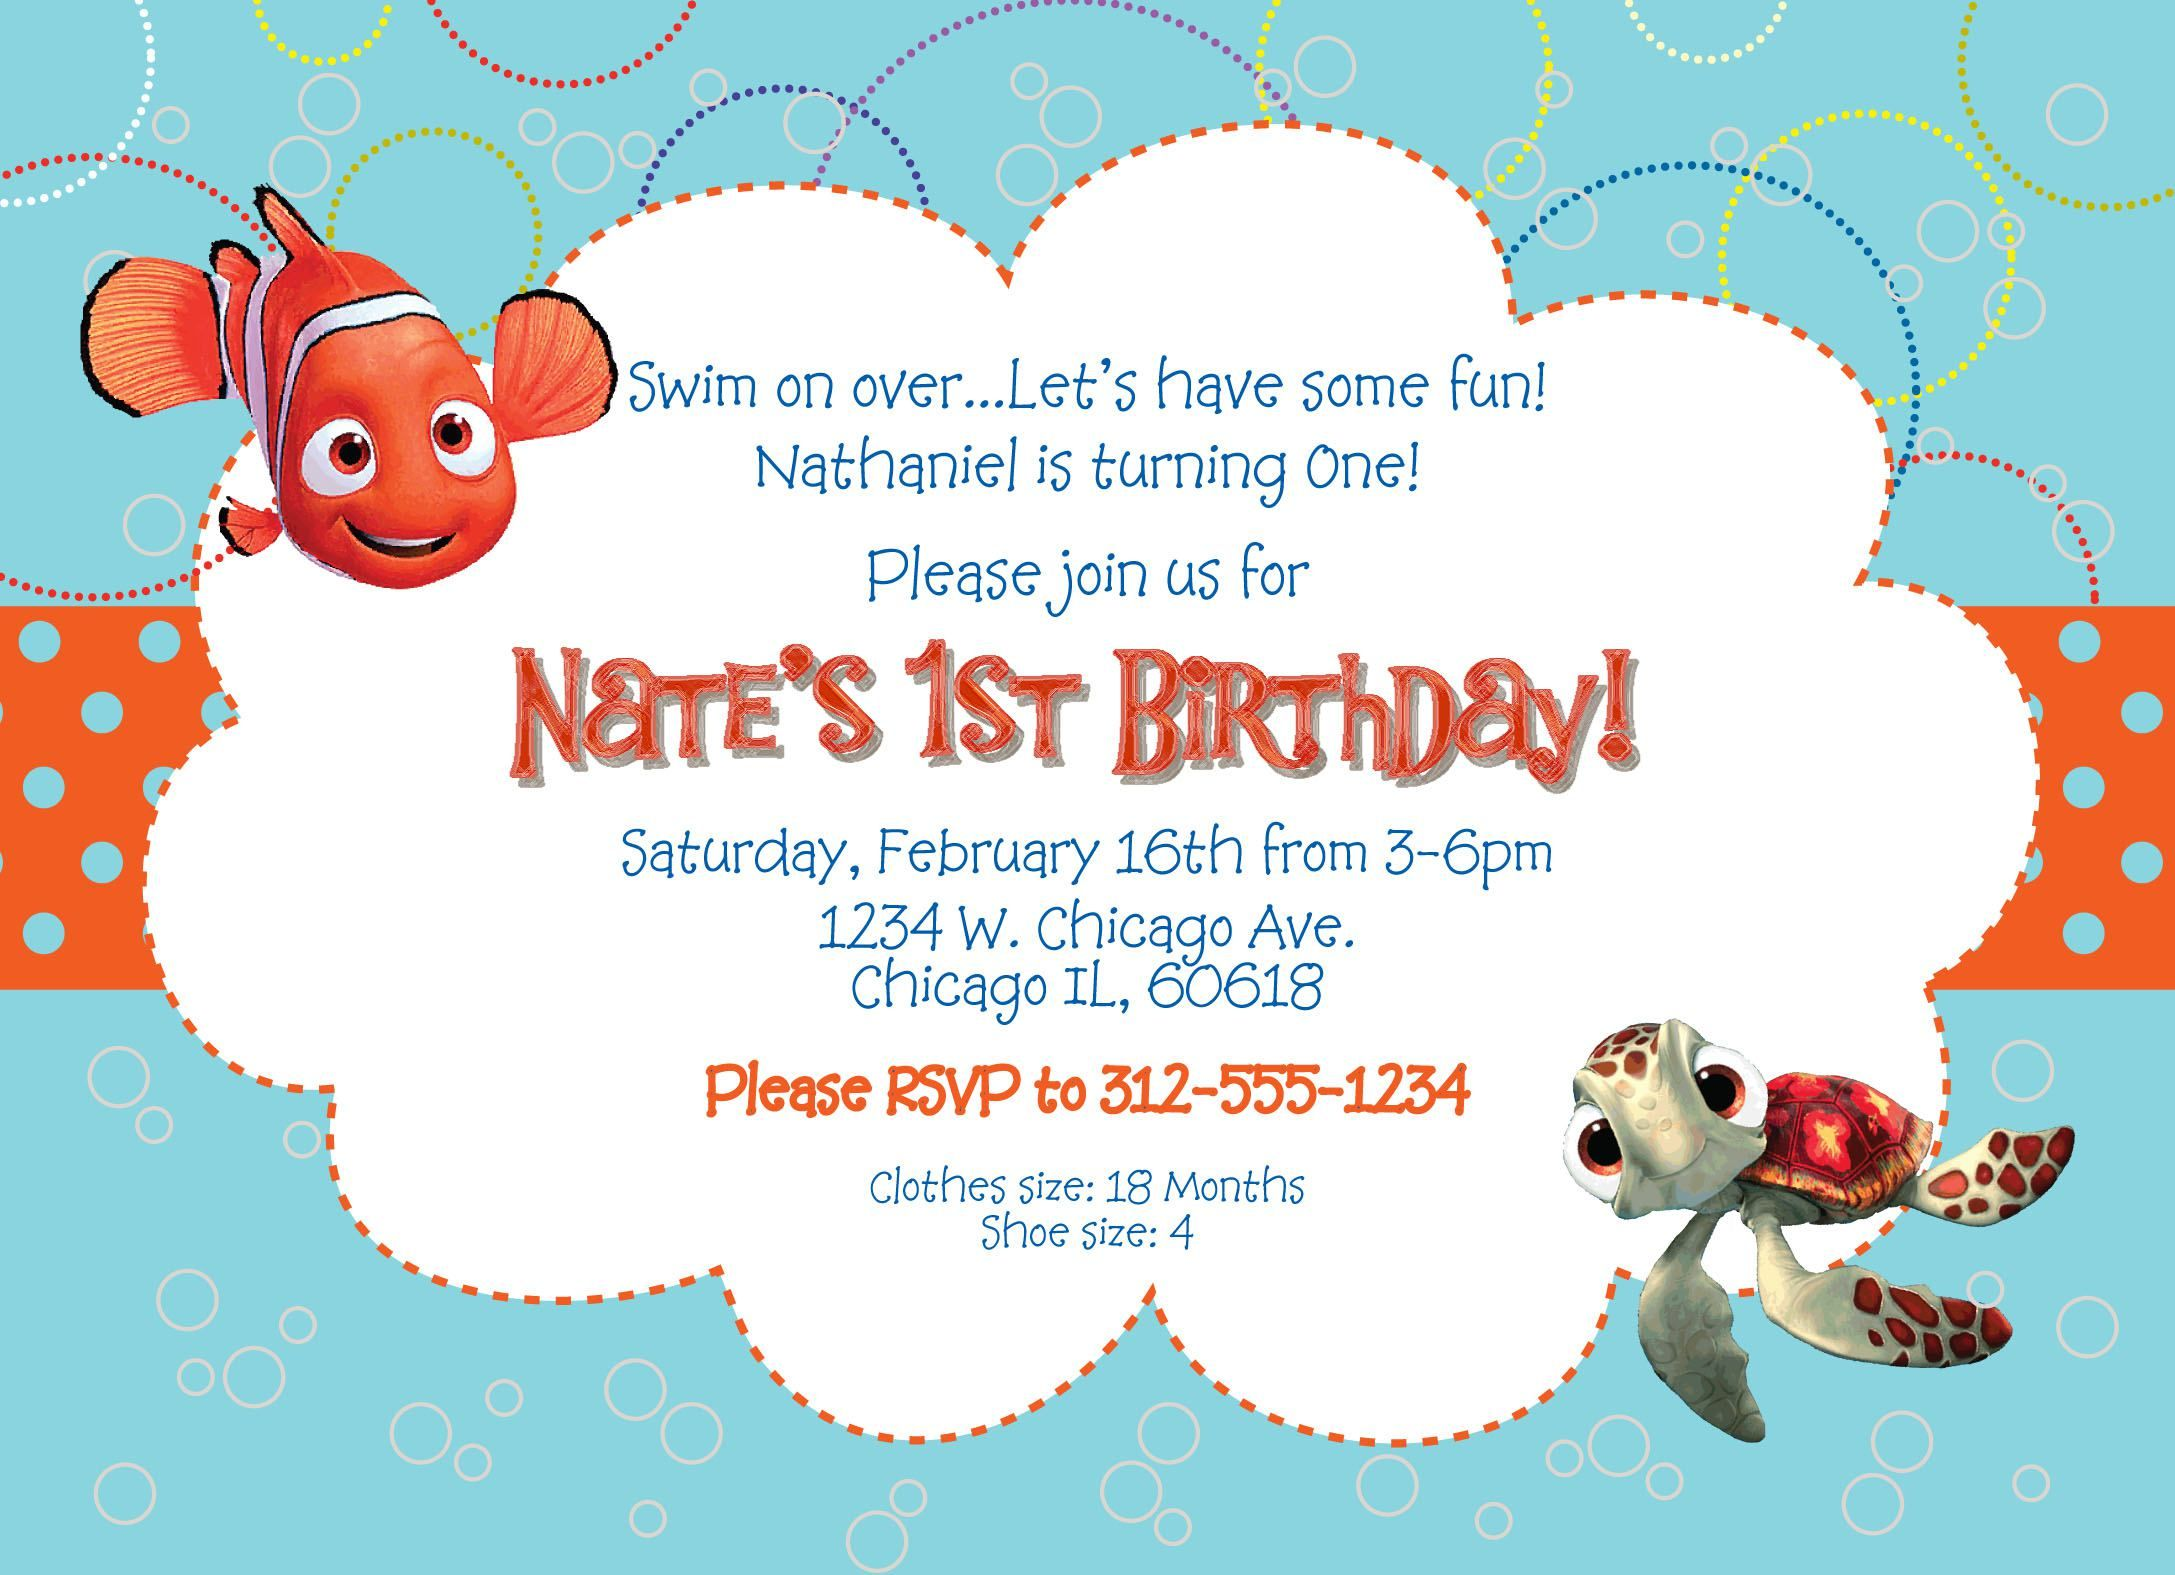 Birthday Card Invitations : Birthday Cards Invitations Printable ...